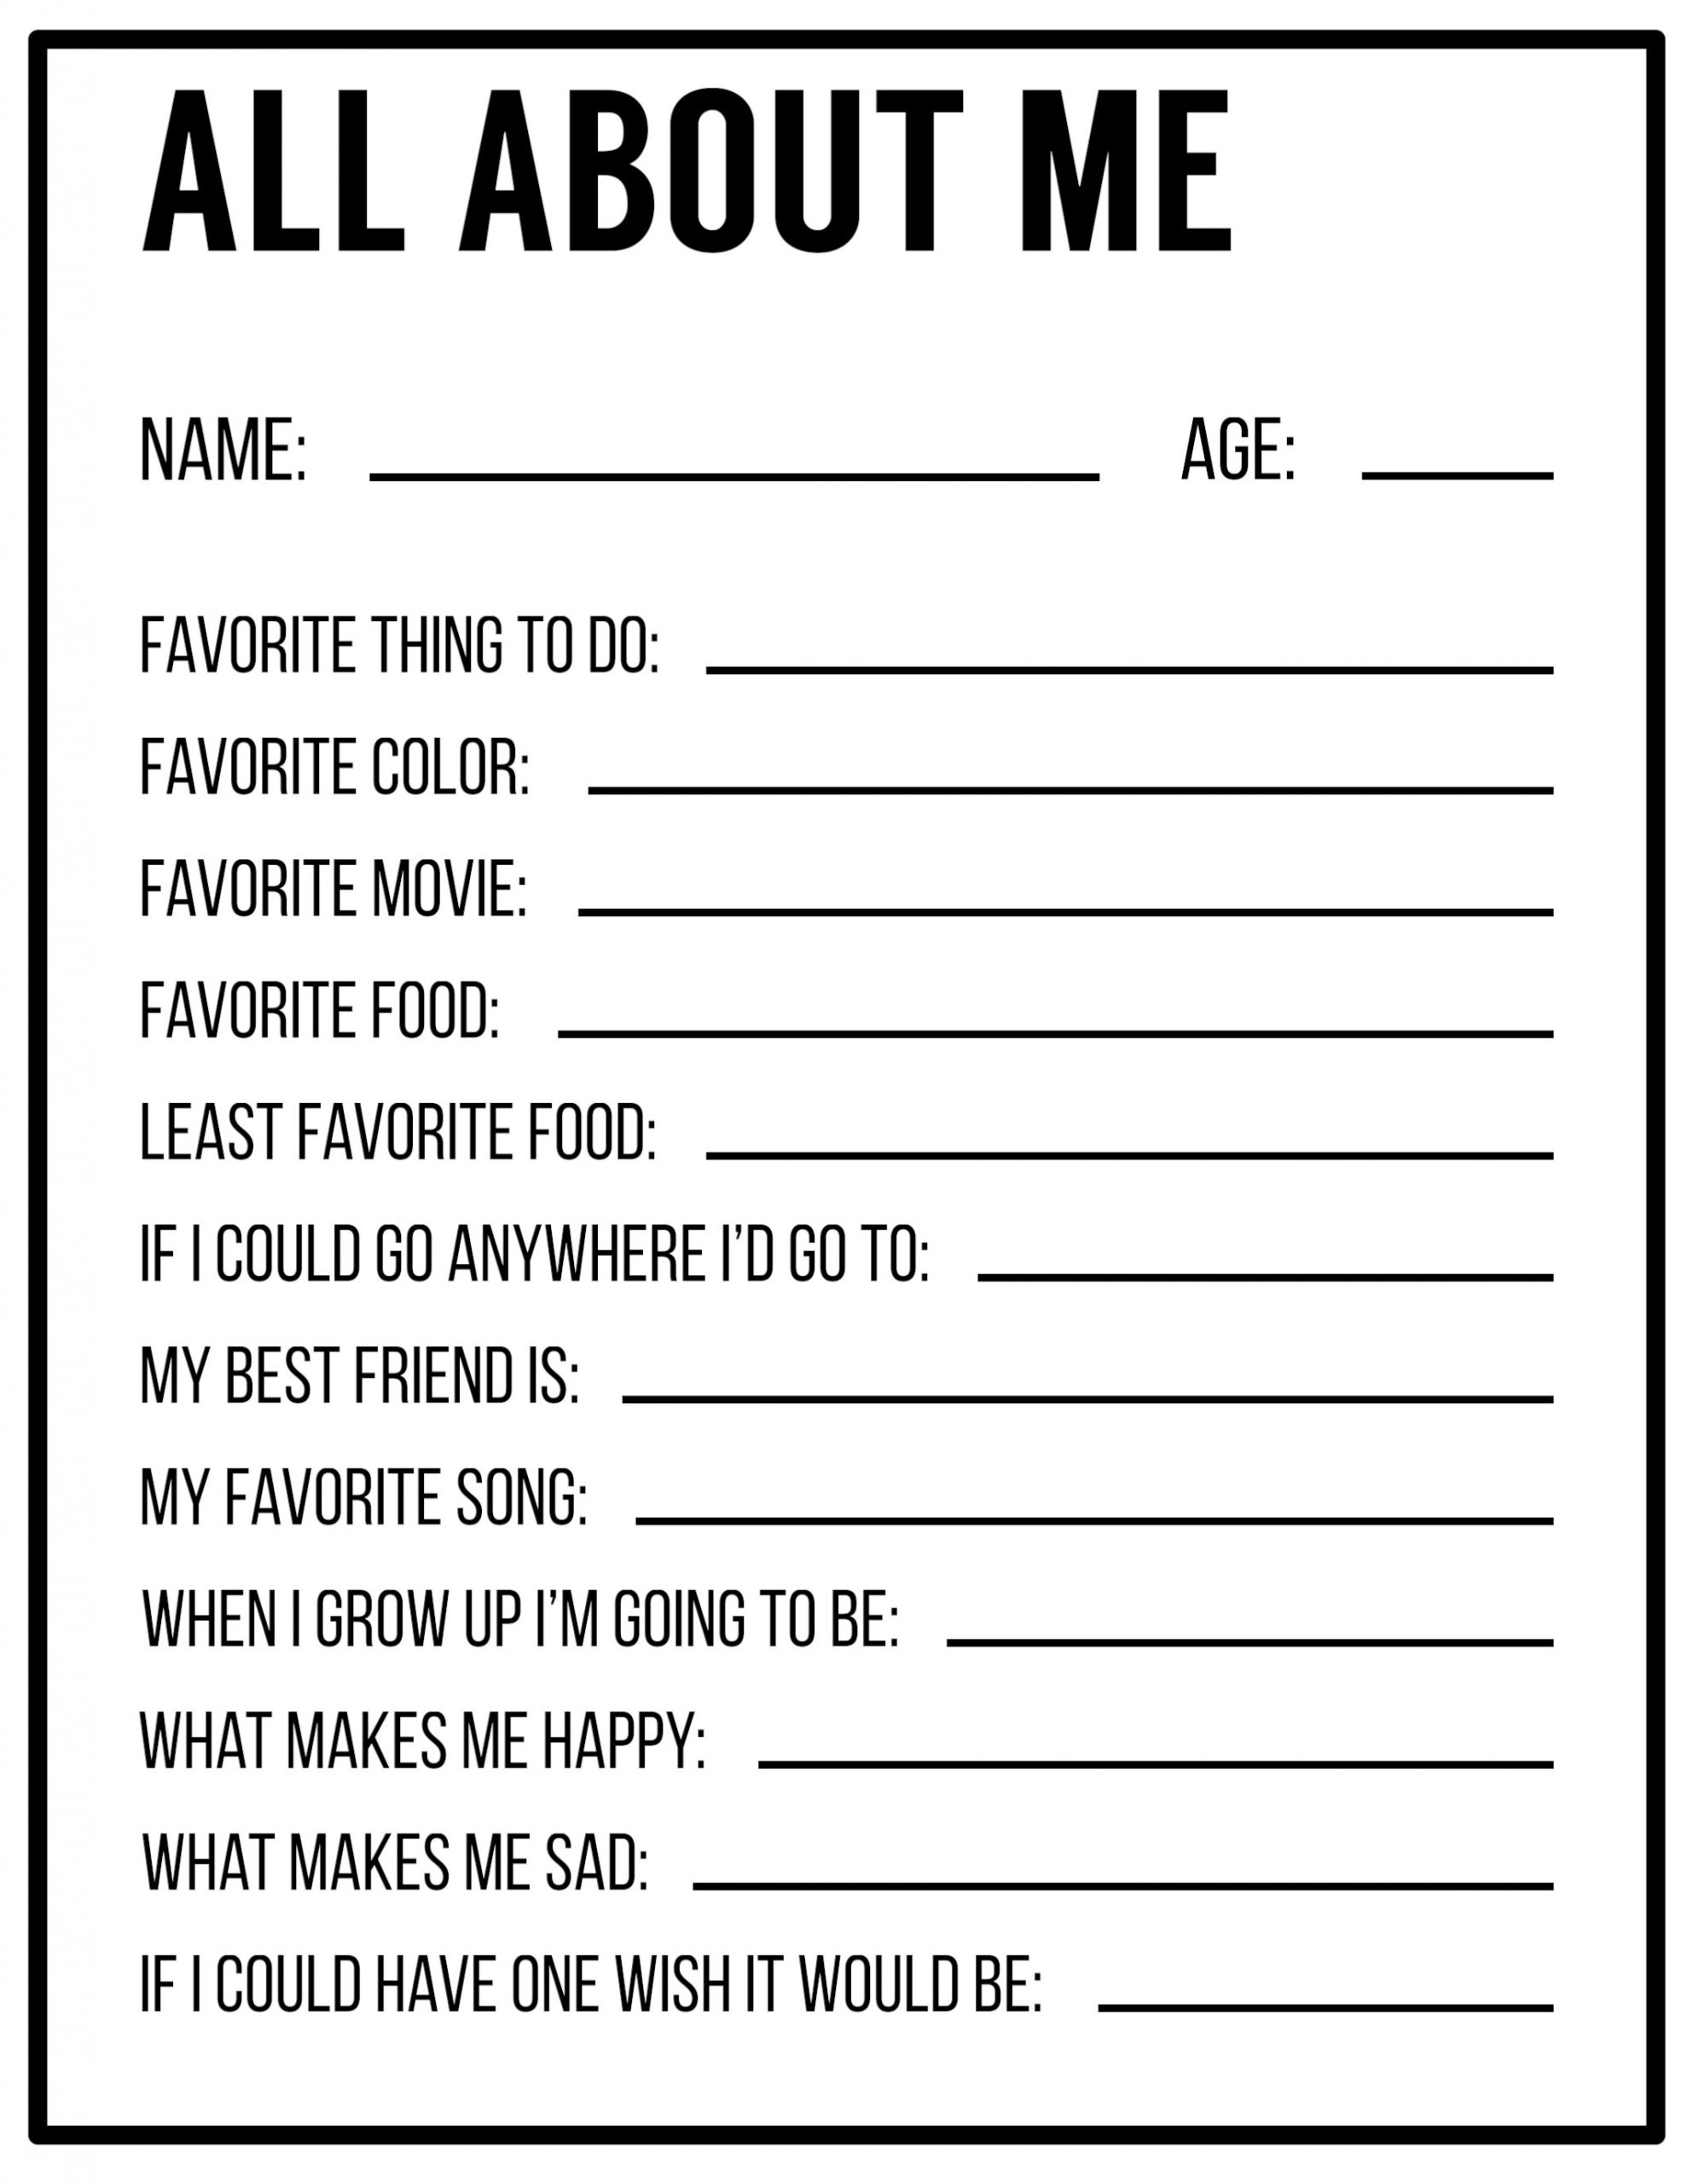 All About Me Printable Worksheet All About Me Printables Interview Template